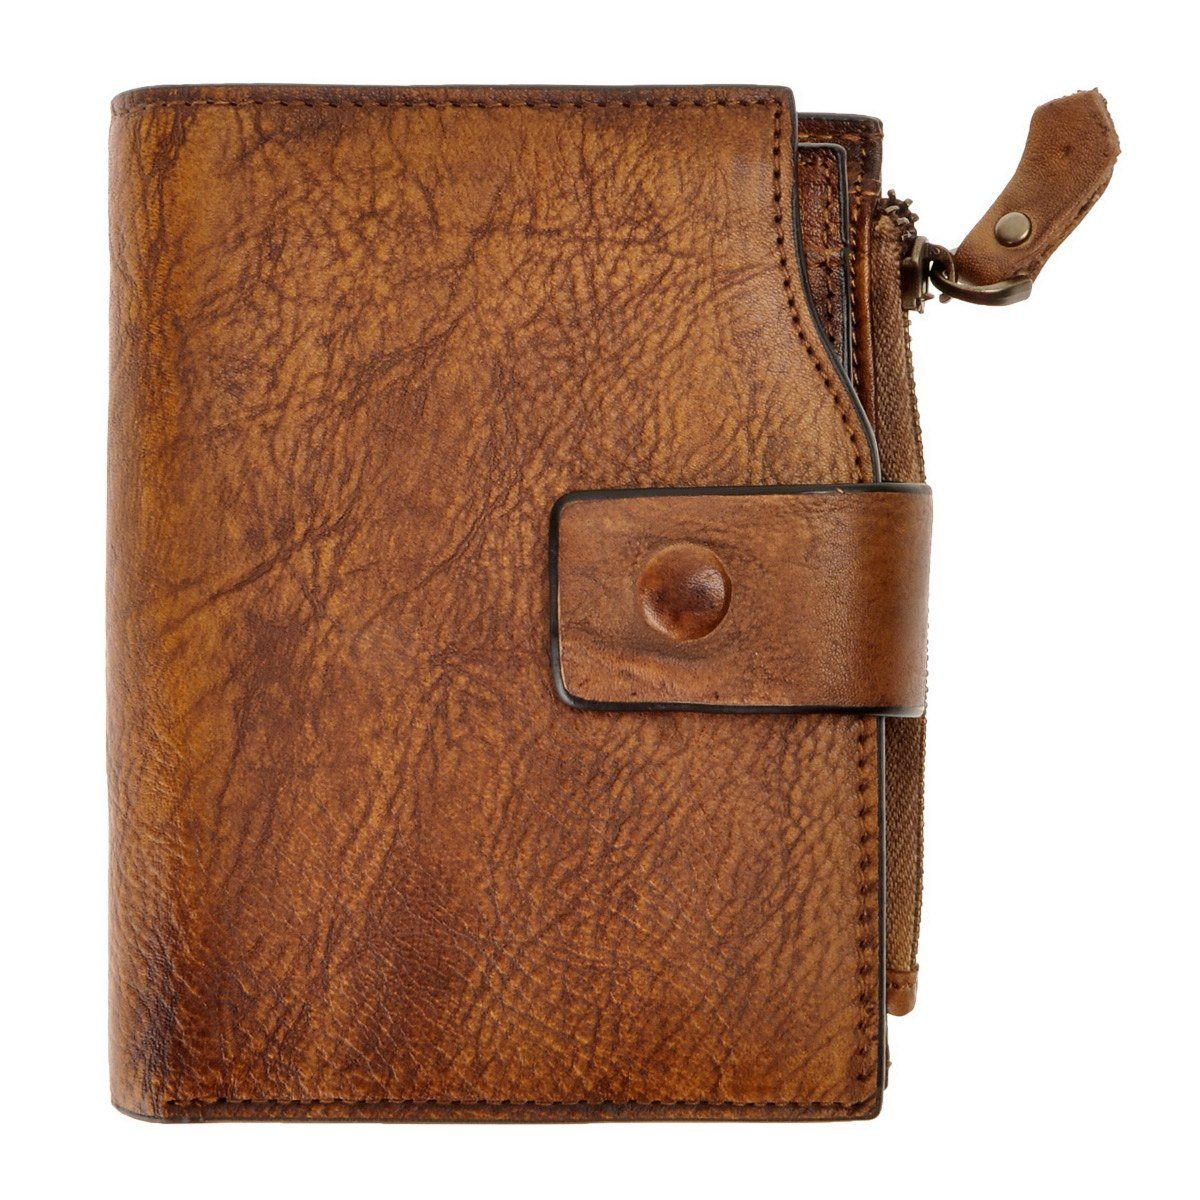 Brown ZLYC Women Vintage Style Handmade Dip Dye Leather Wallet with Card Holder